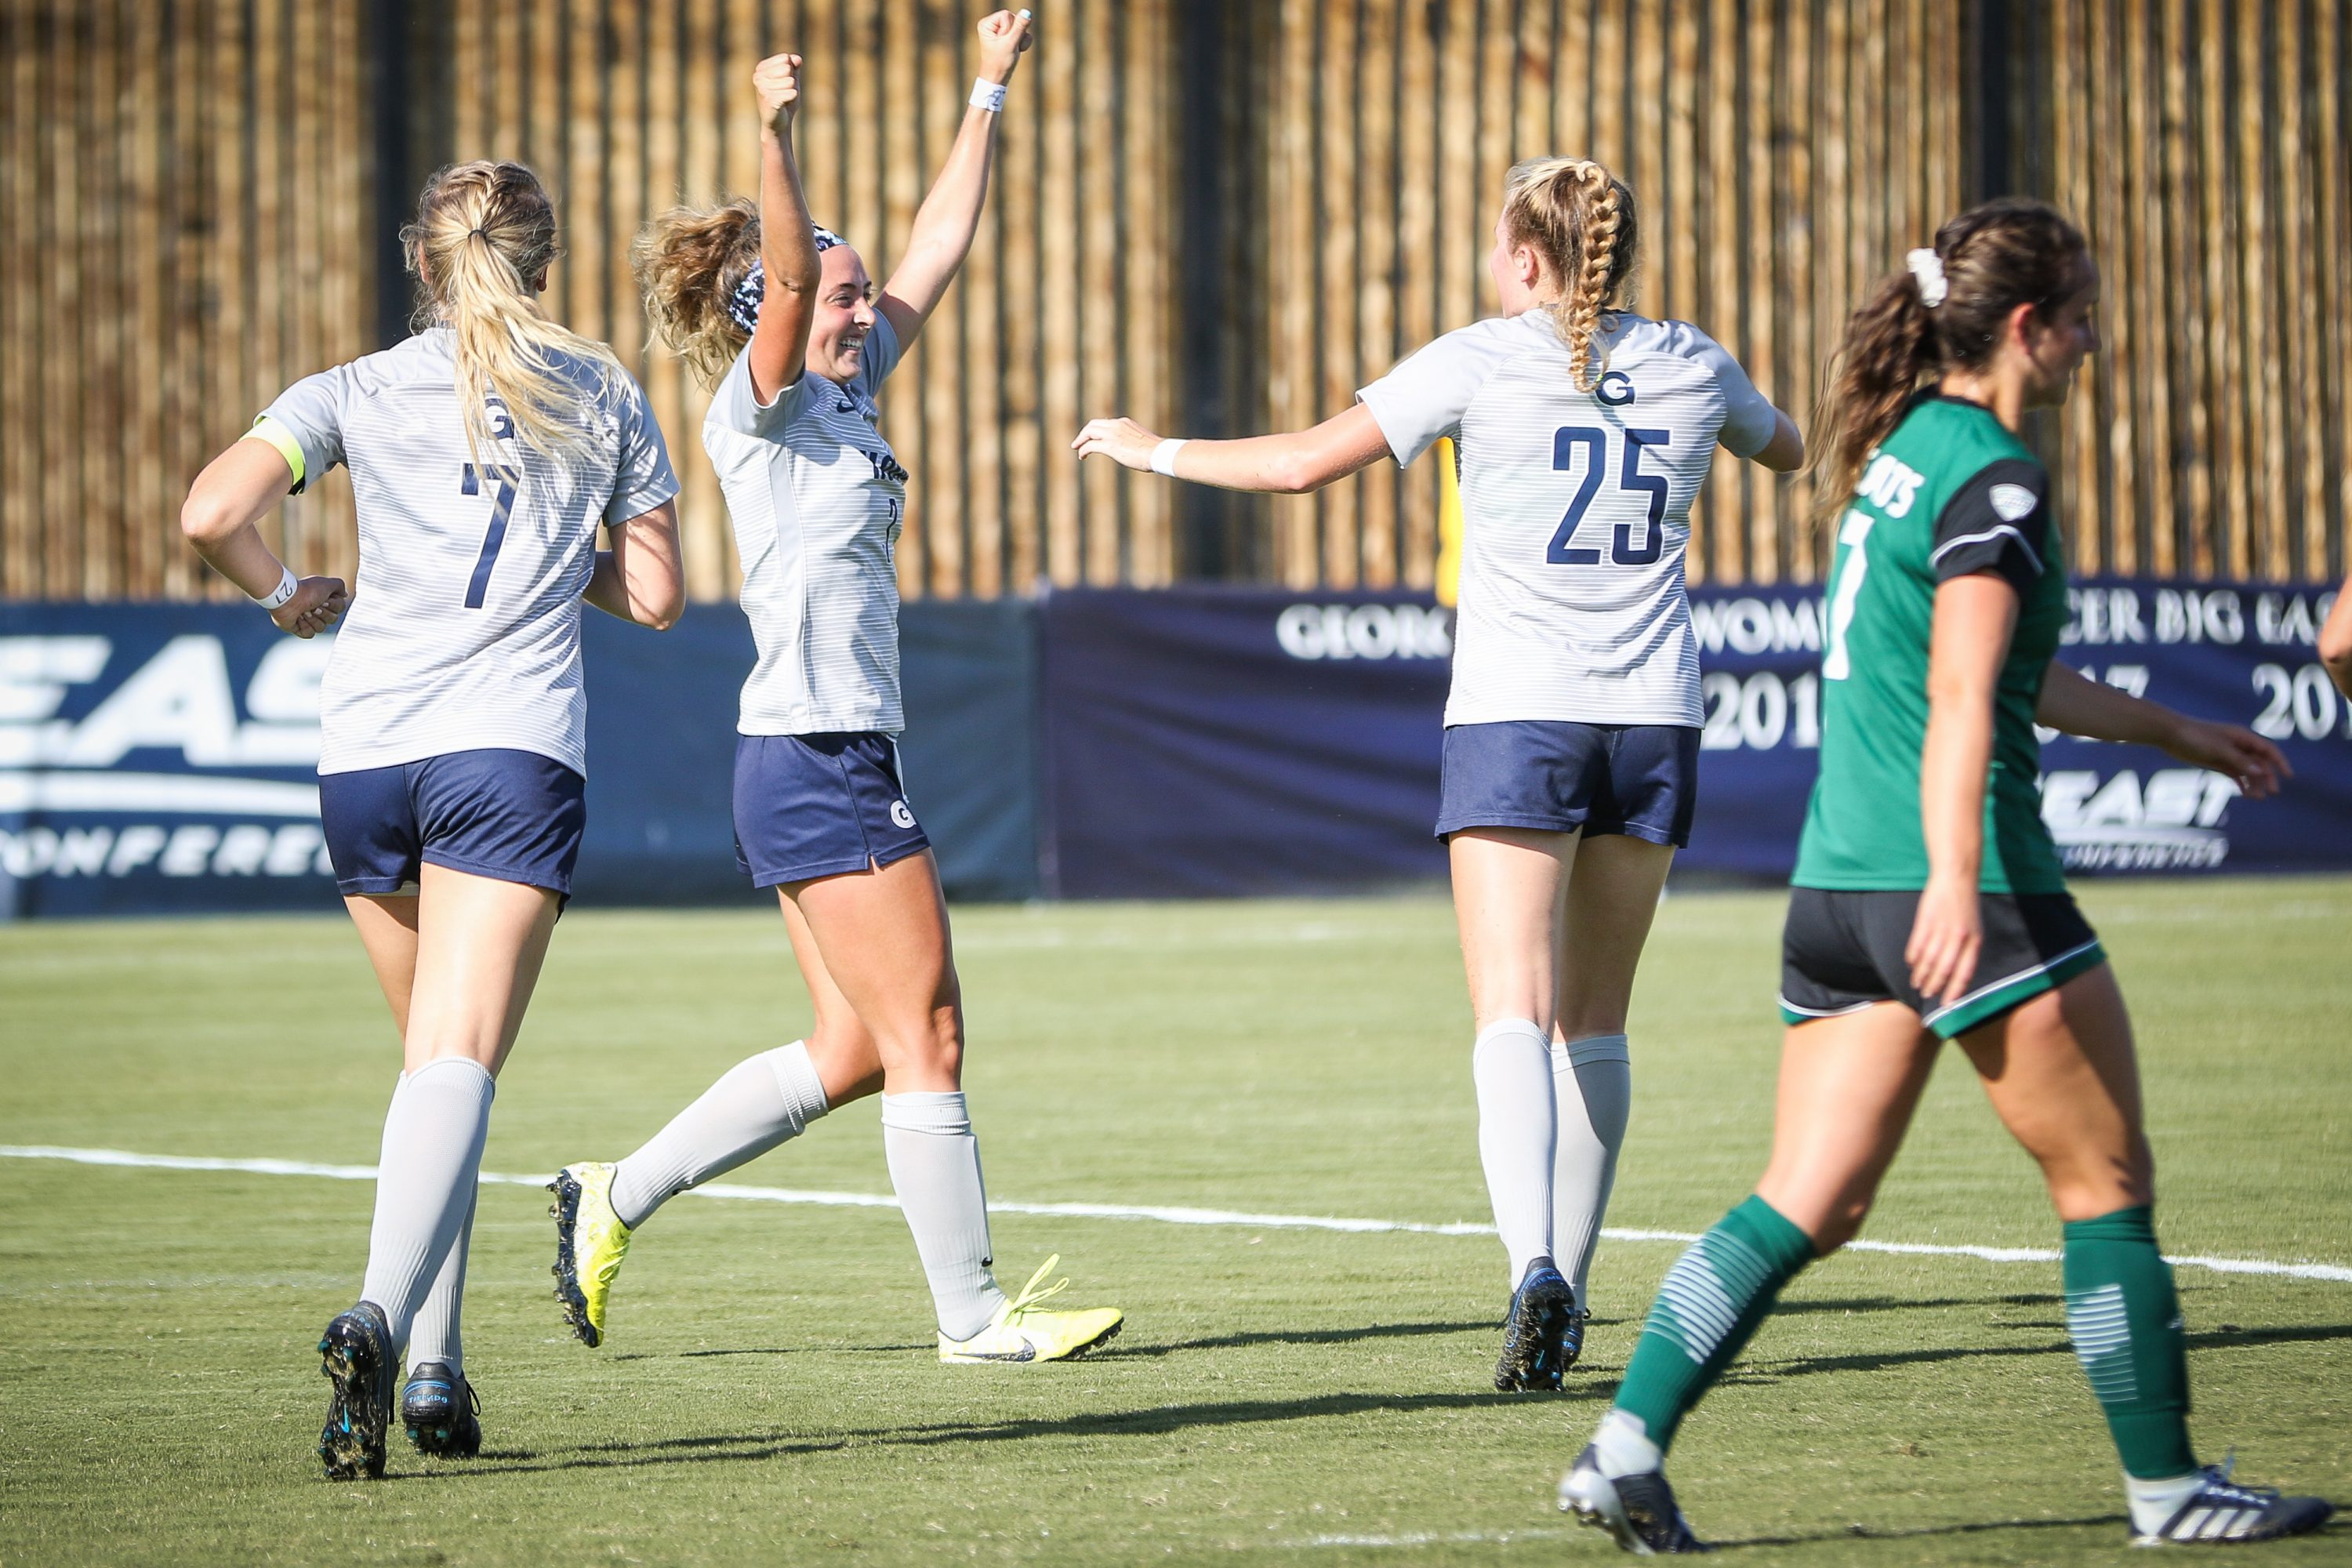 womens non conference soccer action - HD3000×2000